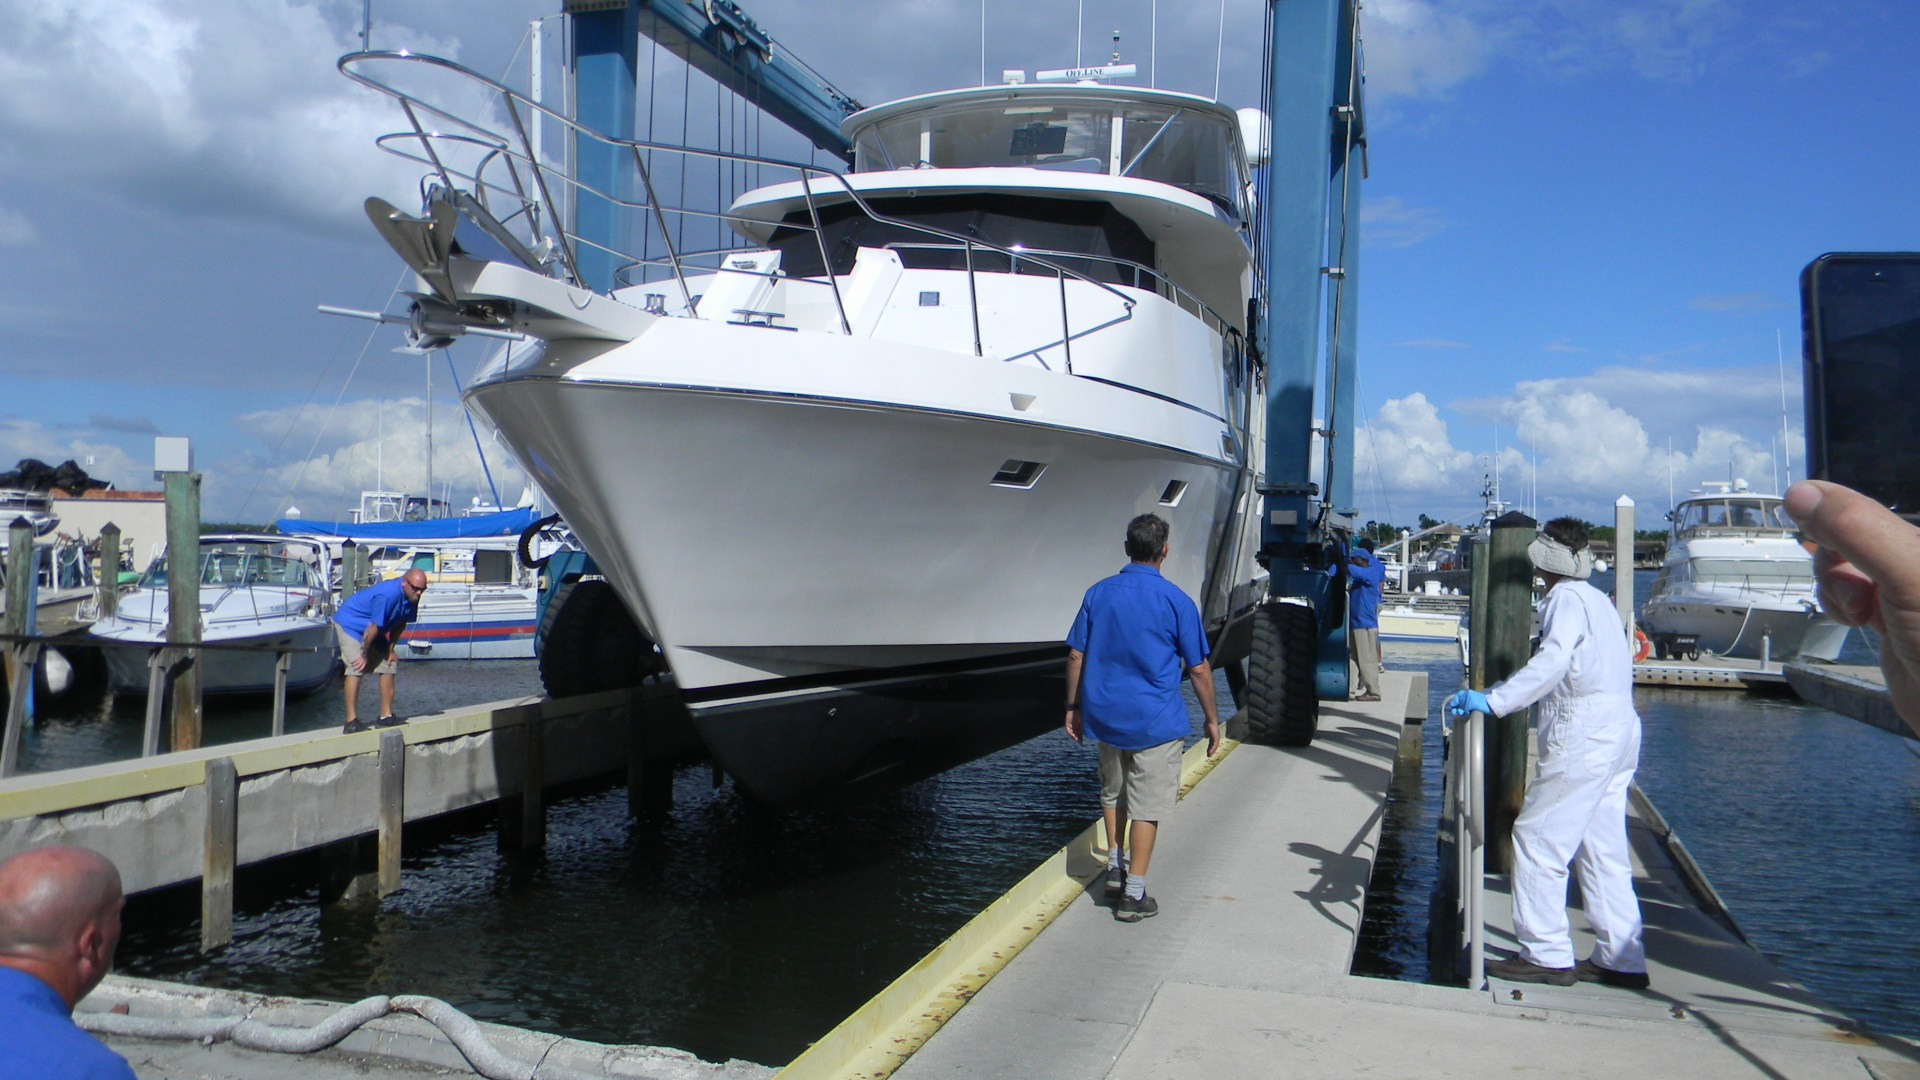 59 Symbol motor yacht hauling out for inspection